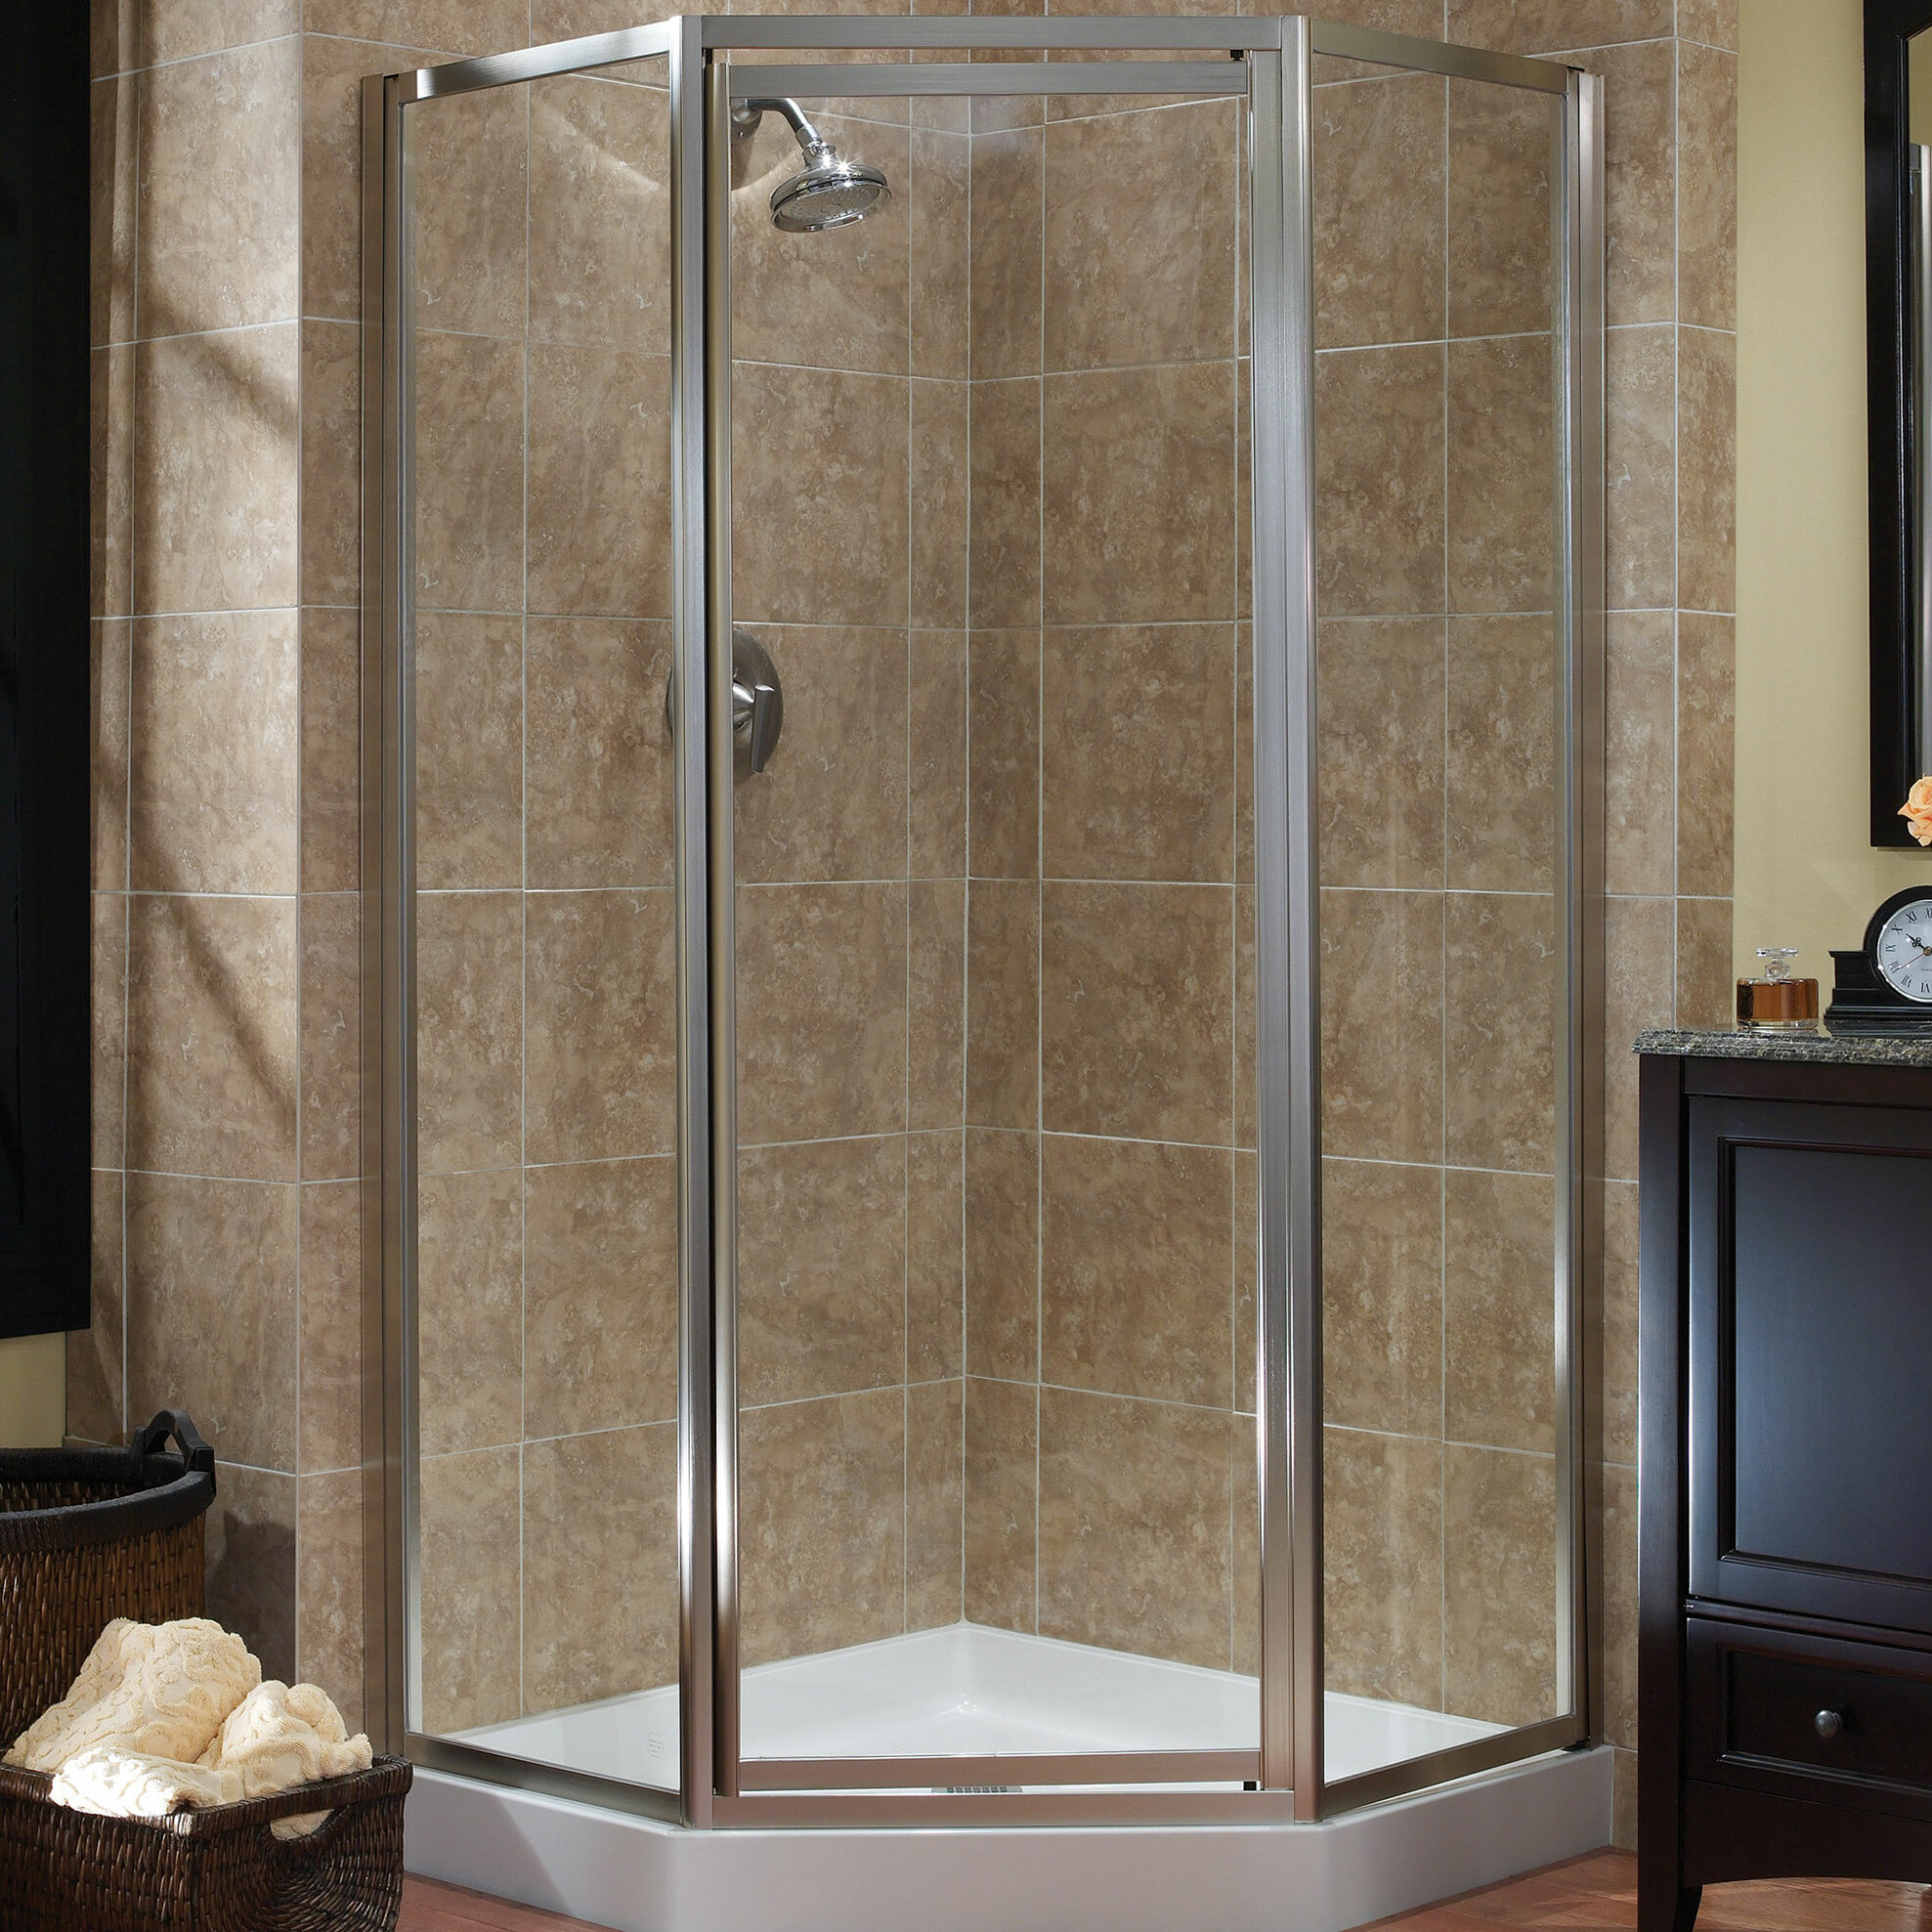 Hazelwood Home Chase 037 X 70 Neo Angle Shower Enclosure